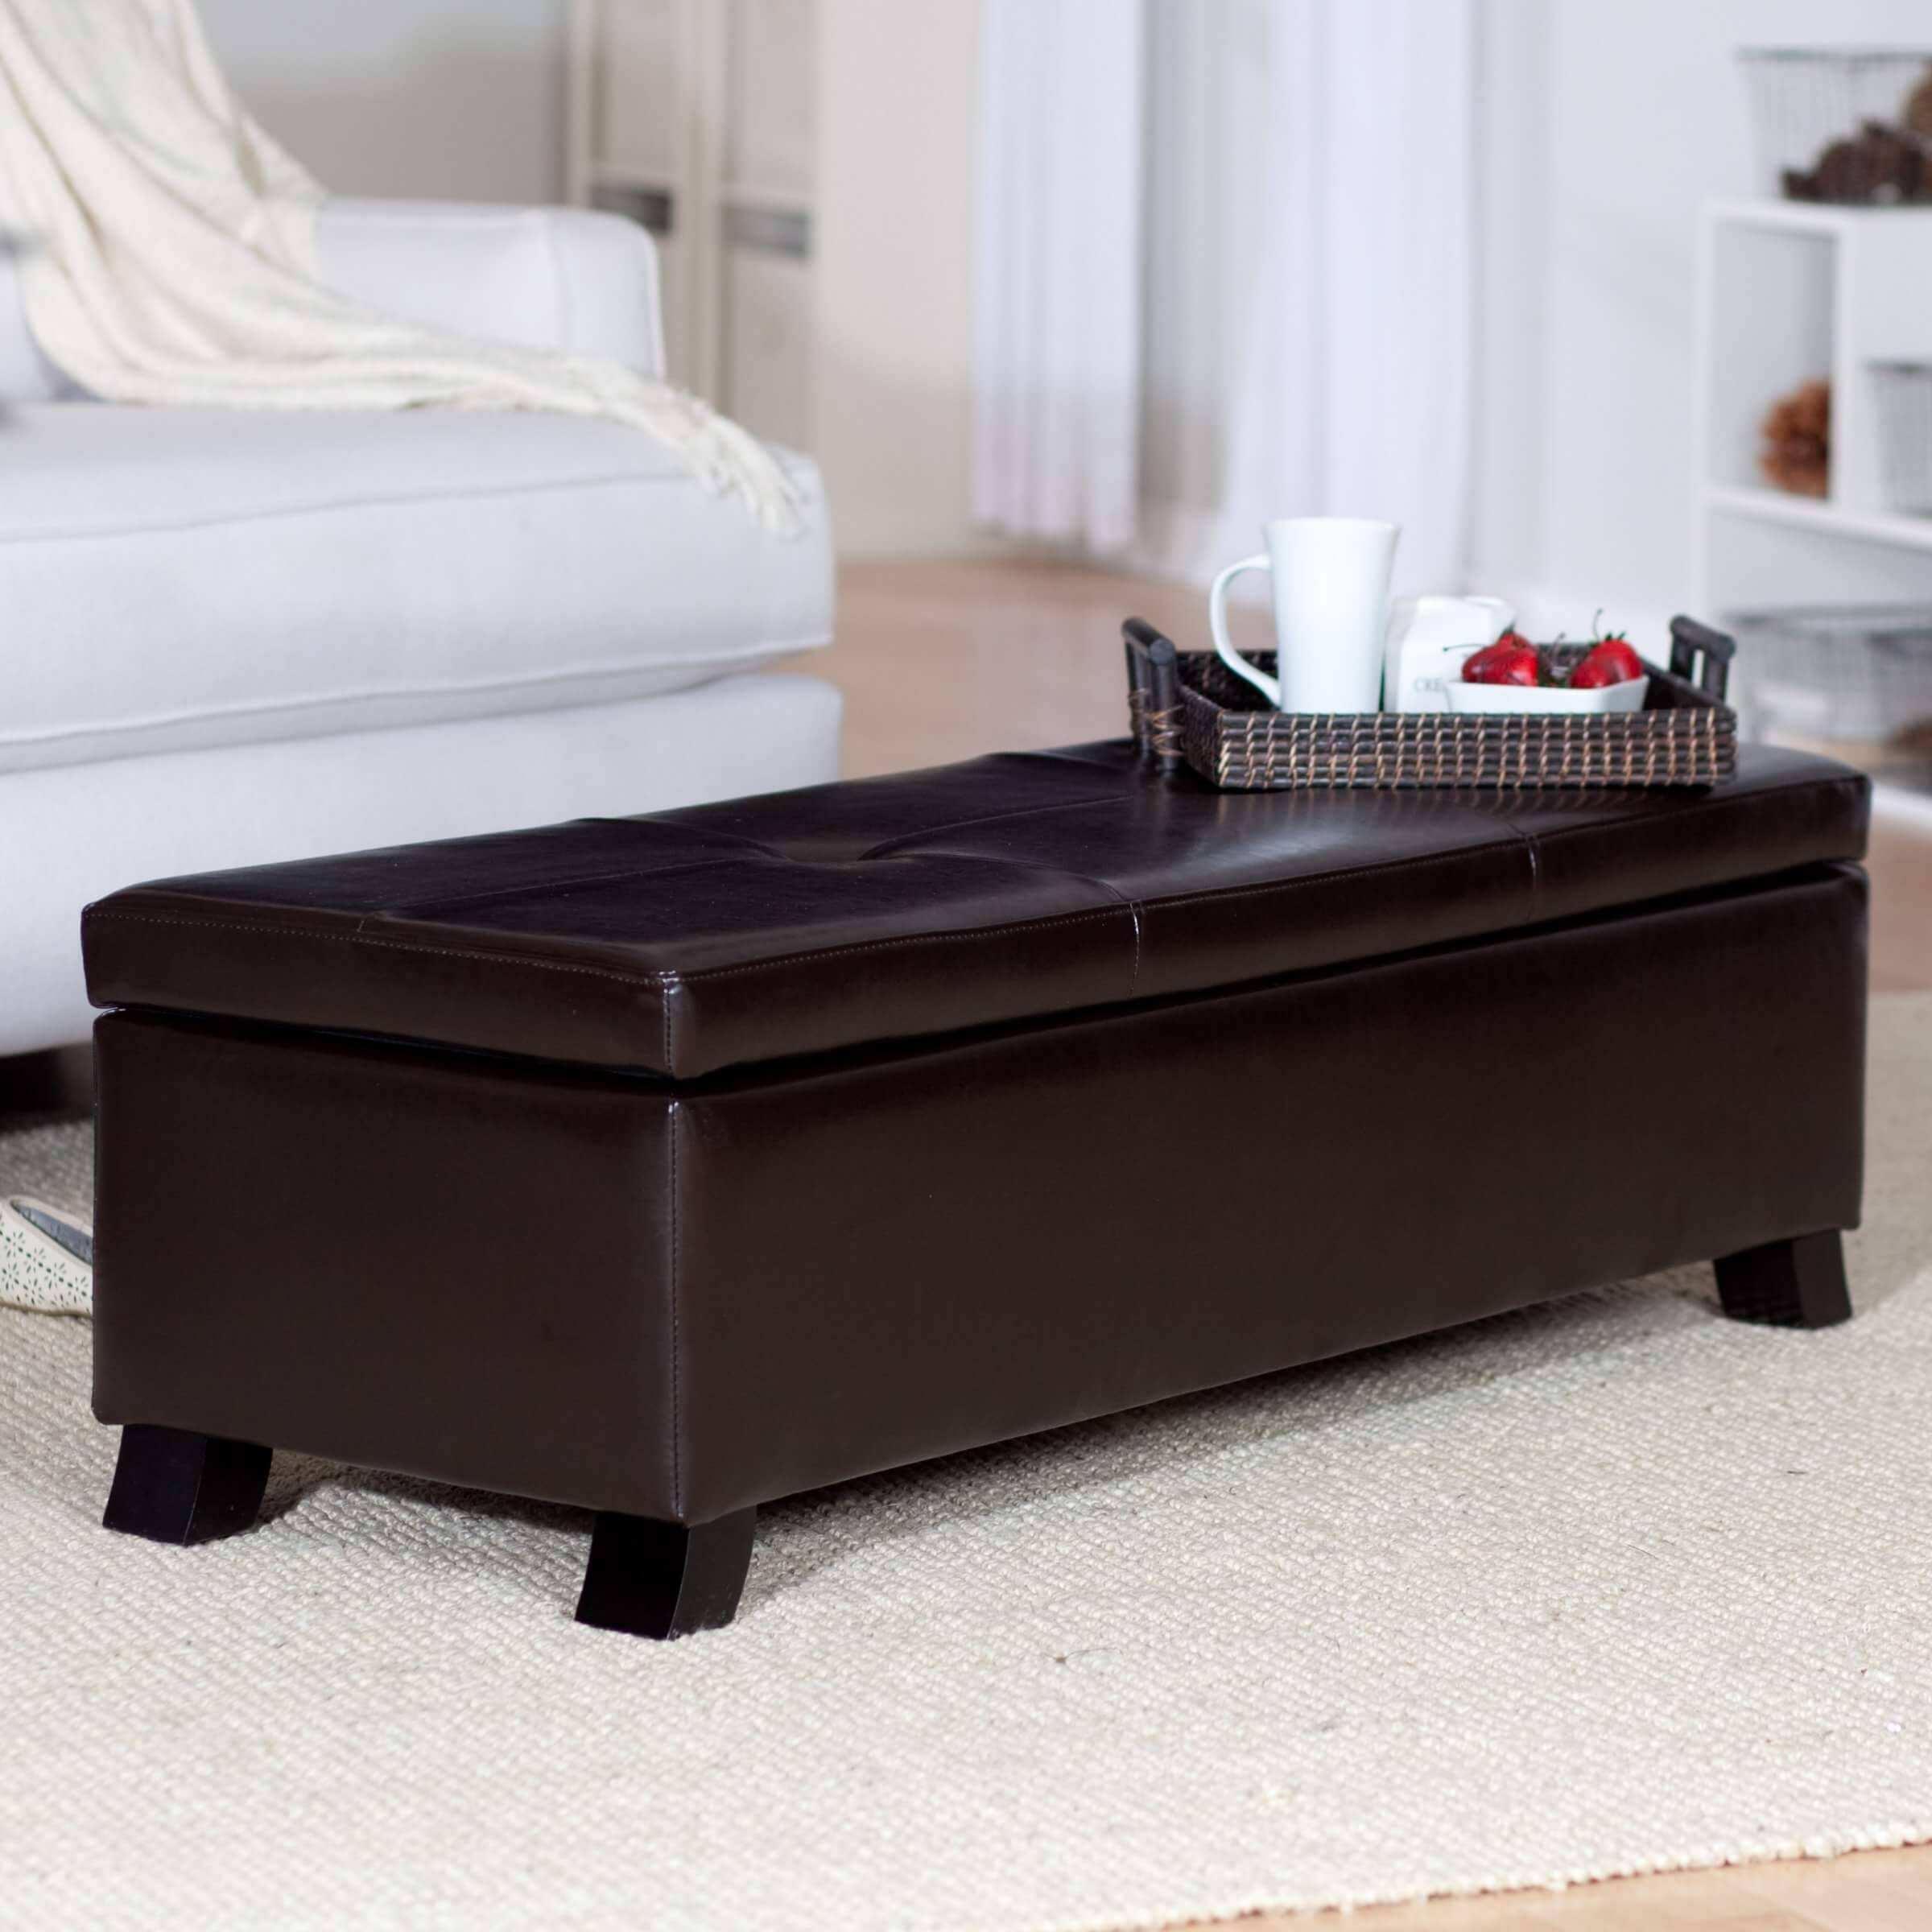 36 Top Brown Leather Ottoman Coffee Tables within Square Coffee Tables With Storage Cubes (Image 1 of 31)